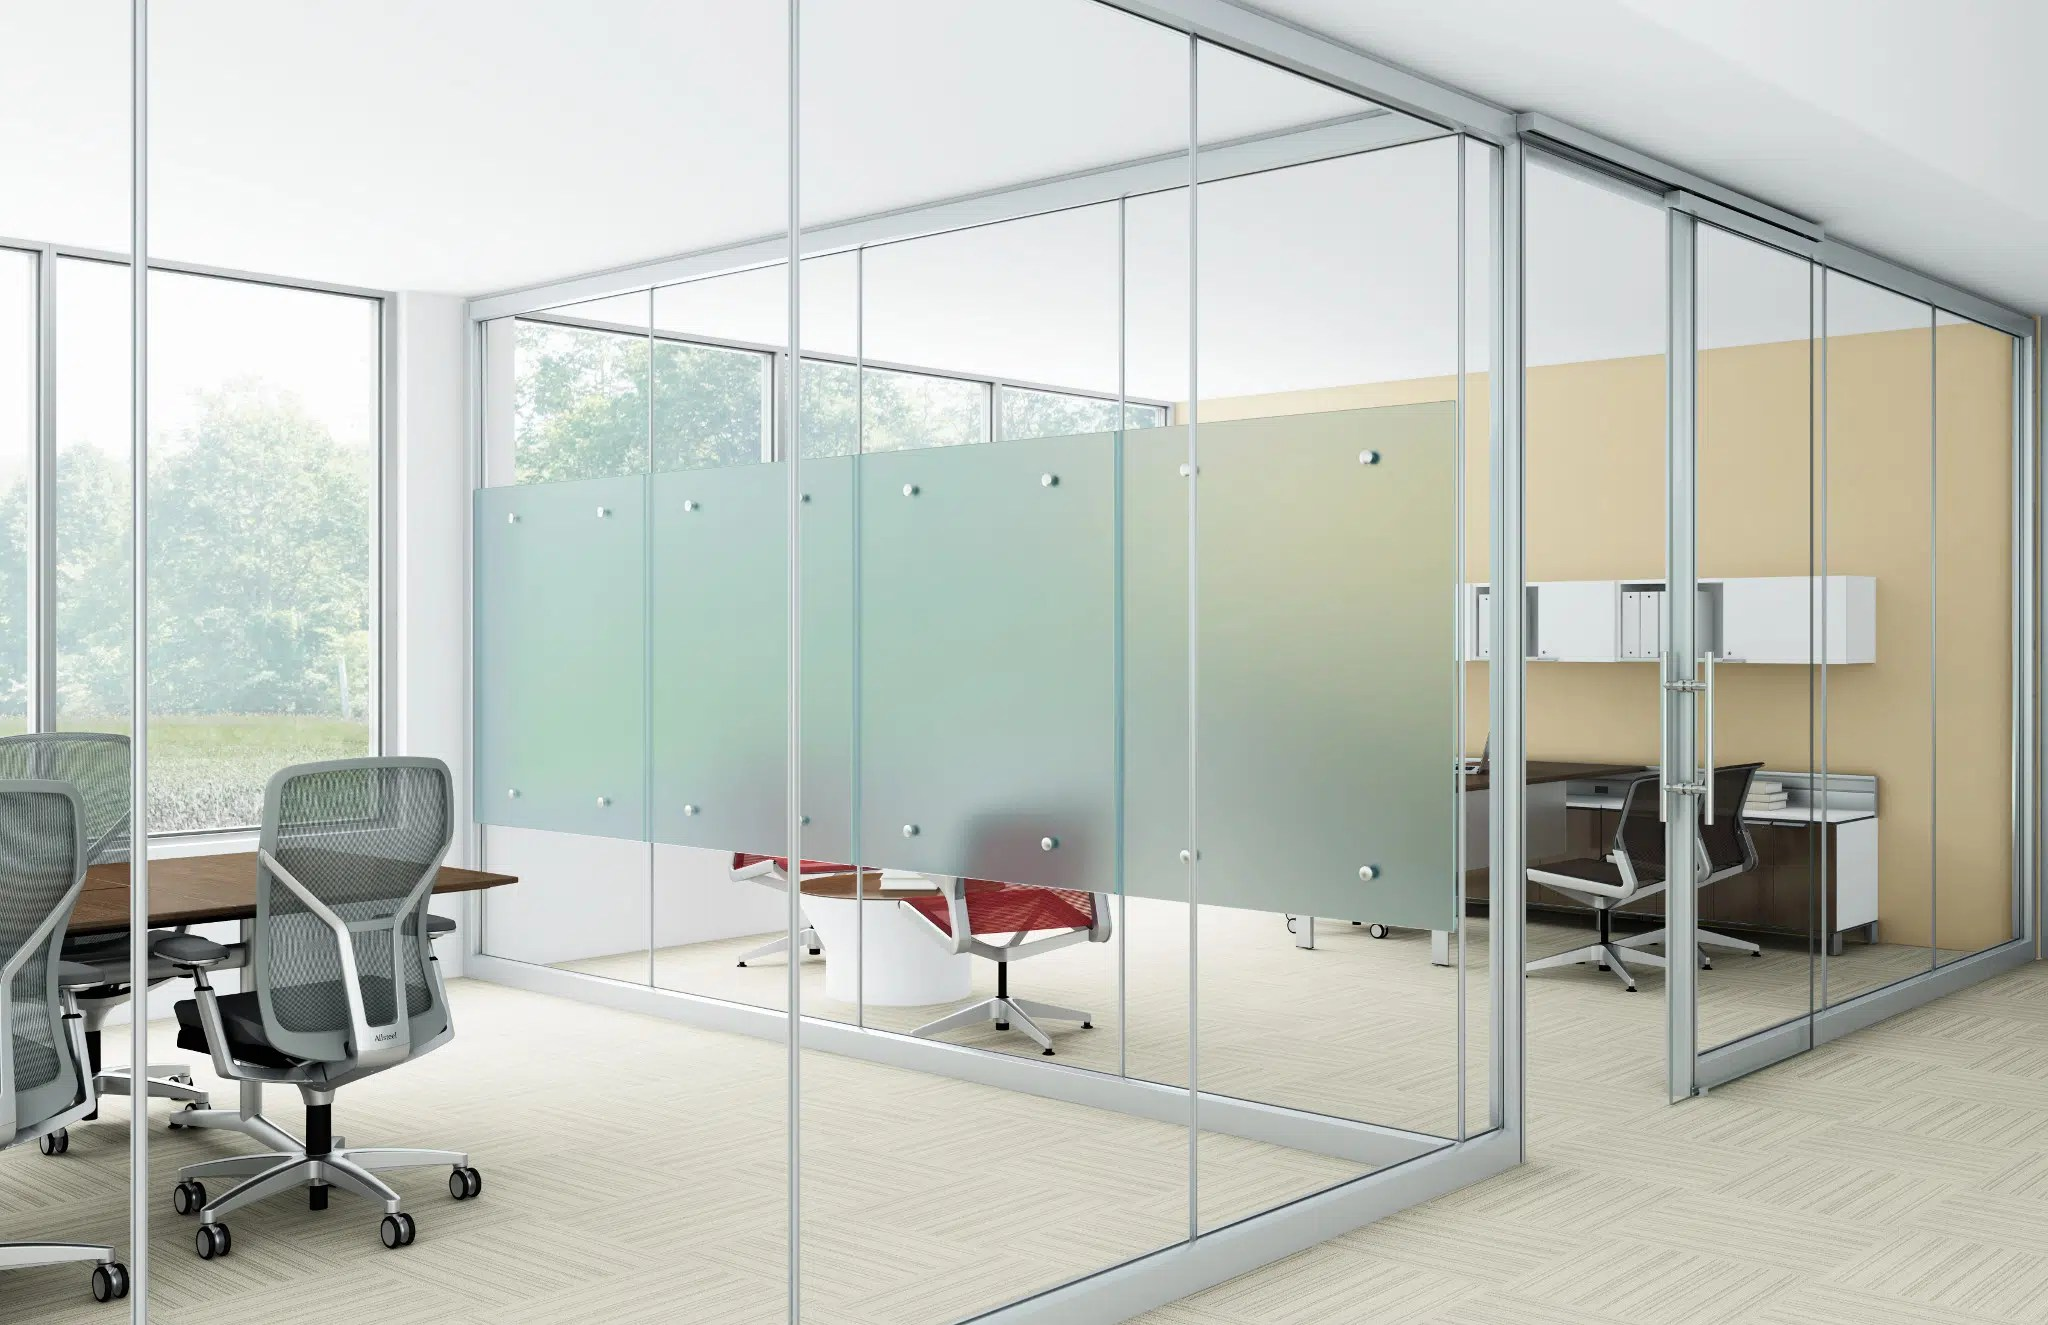 Office Wall Design Architectural Office Walls Architectural Office Partitions